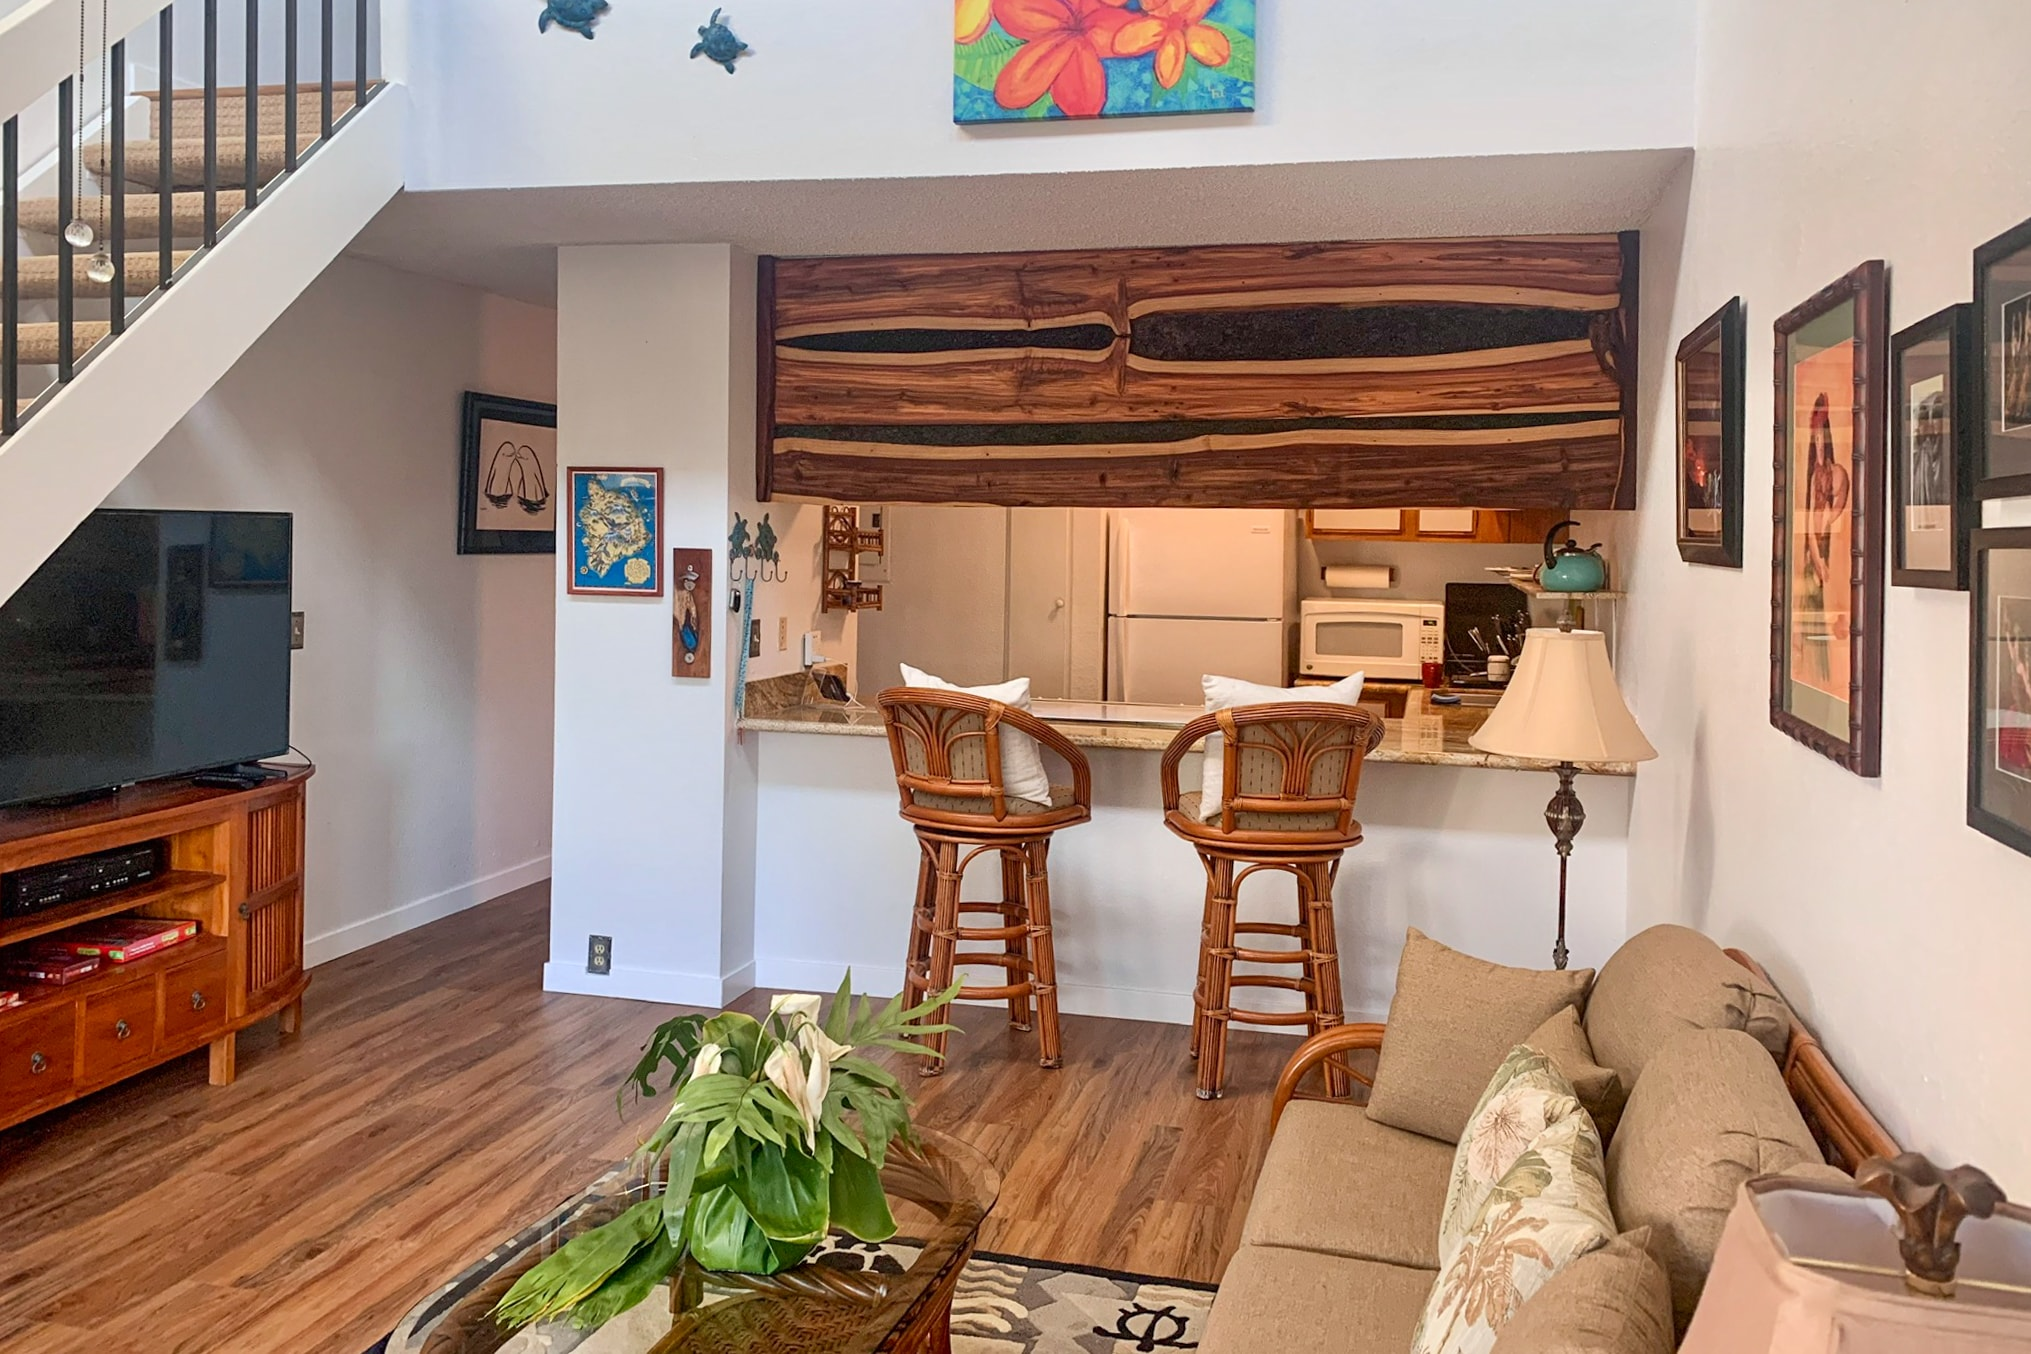 Enjoy A Little Aloha: private lanai and ocean view